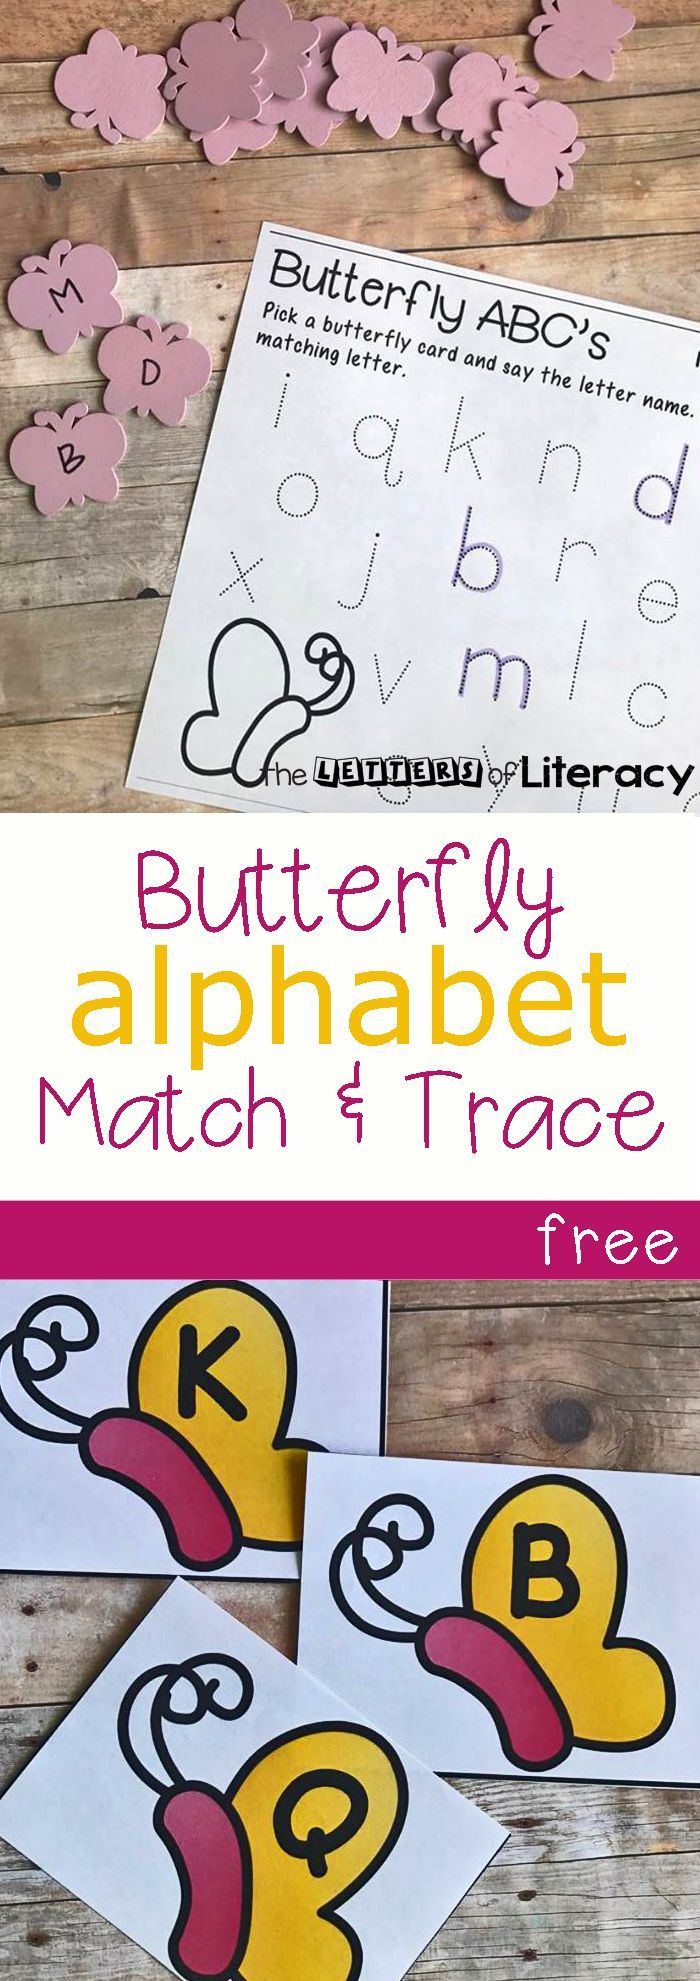 best 25 butterfly games ideas on pinterest butterfly life cycle